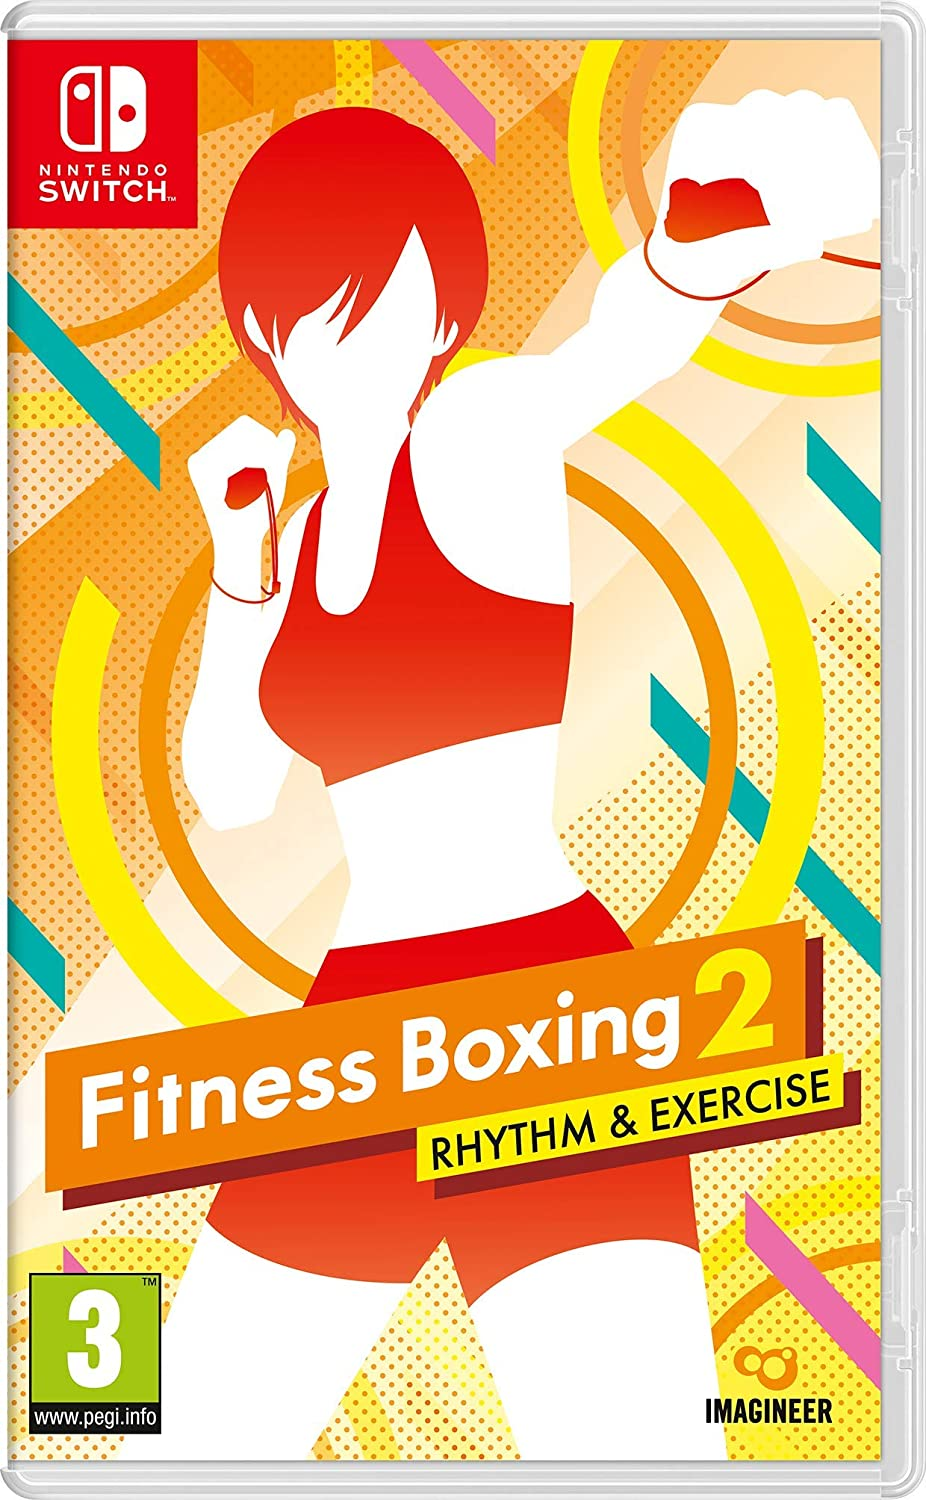 Fitness Boxing 2 Rhythm & Exercise